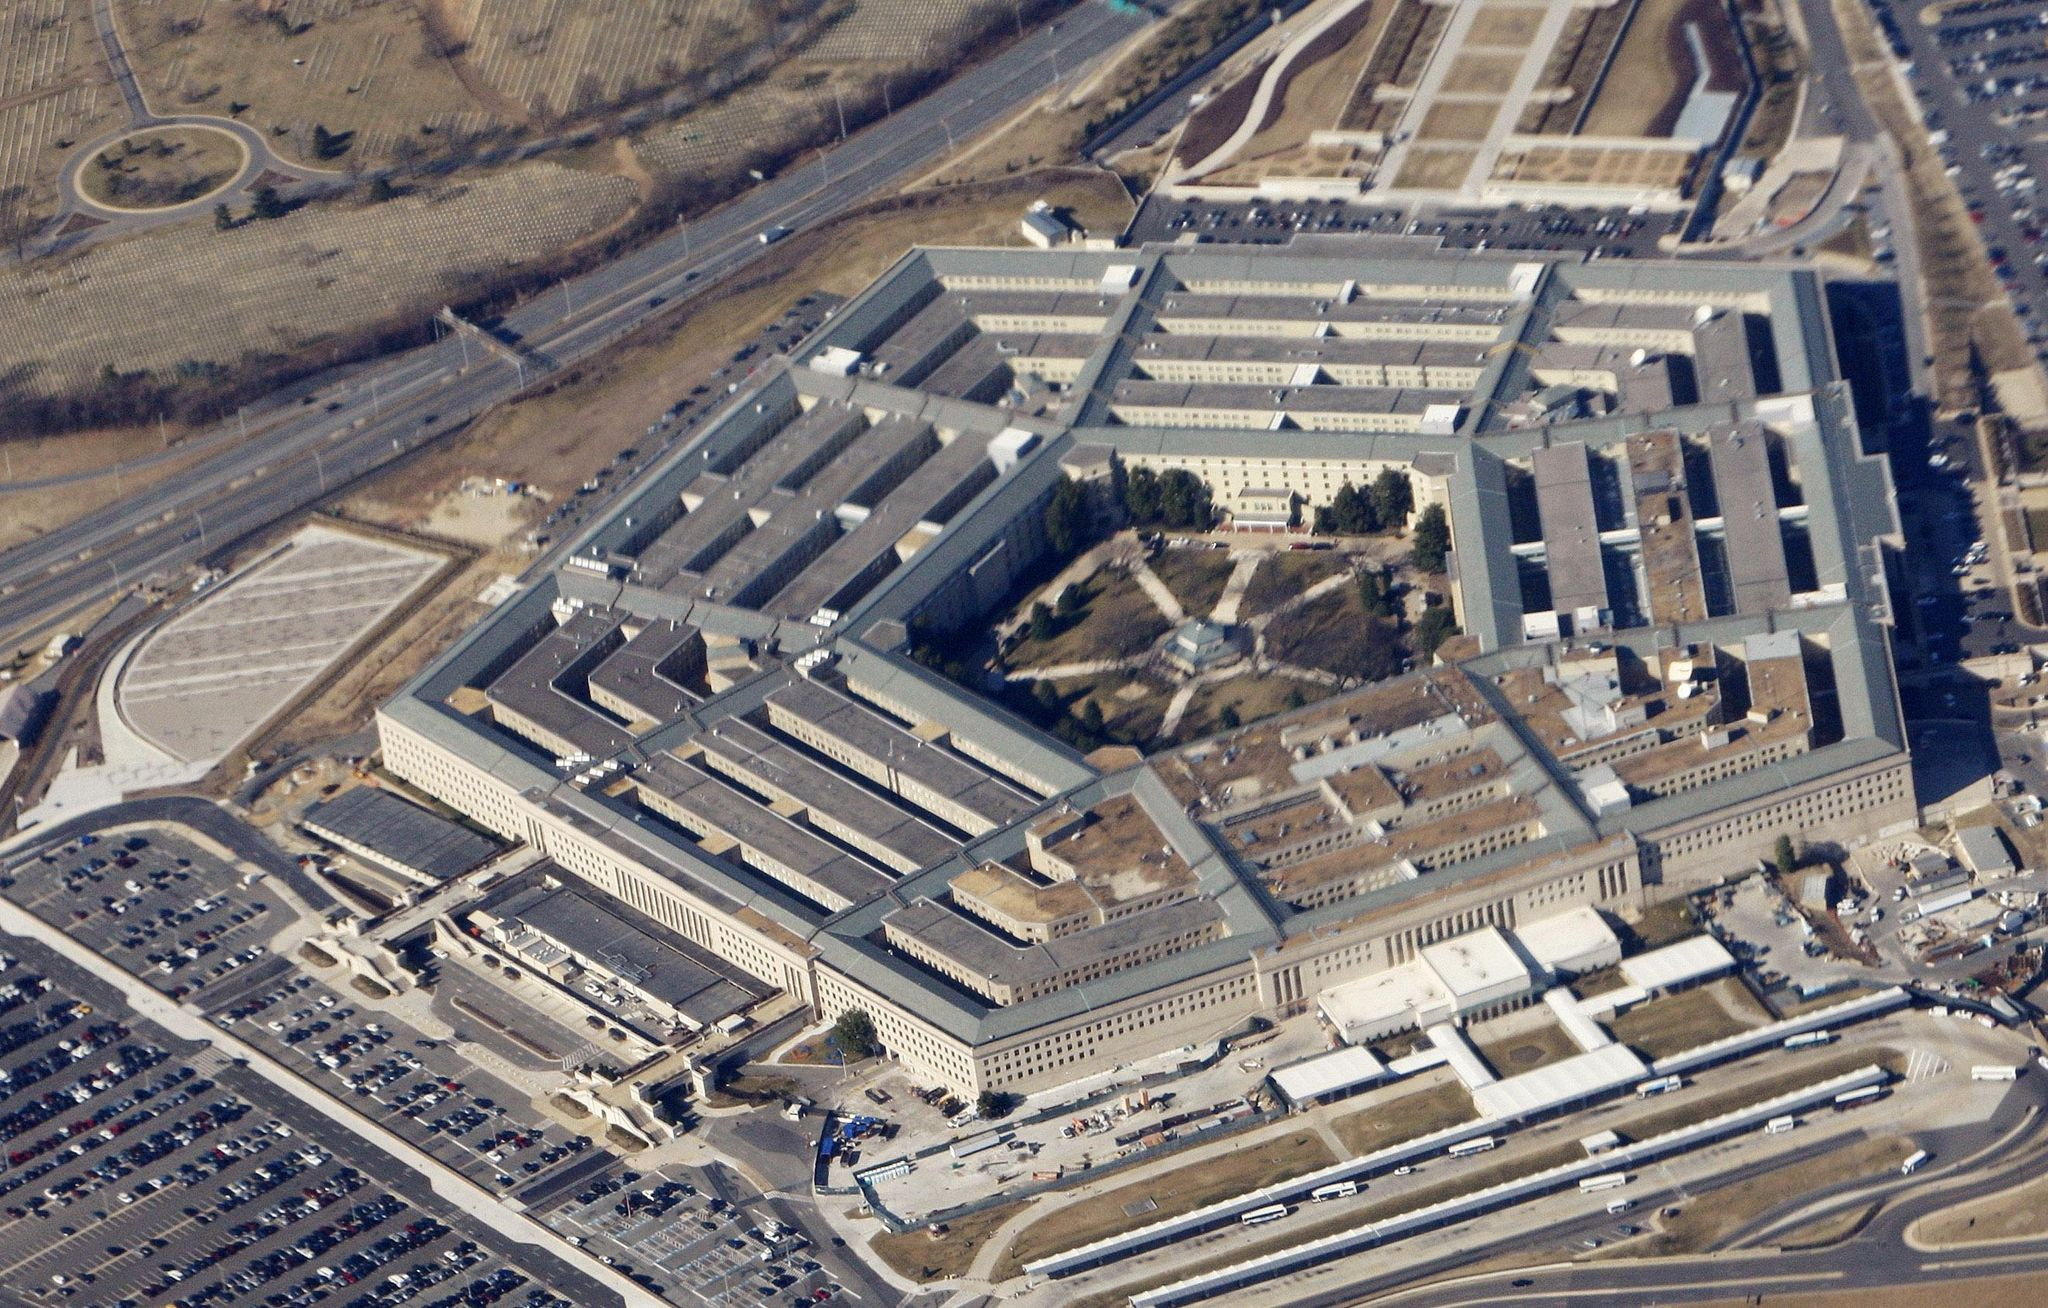 U.S. military deletes, apologizes for New Year's Eve bomb tweet